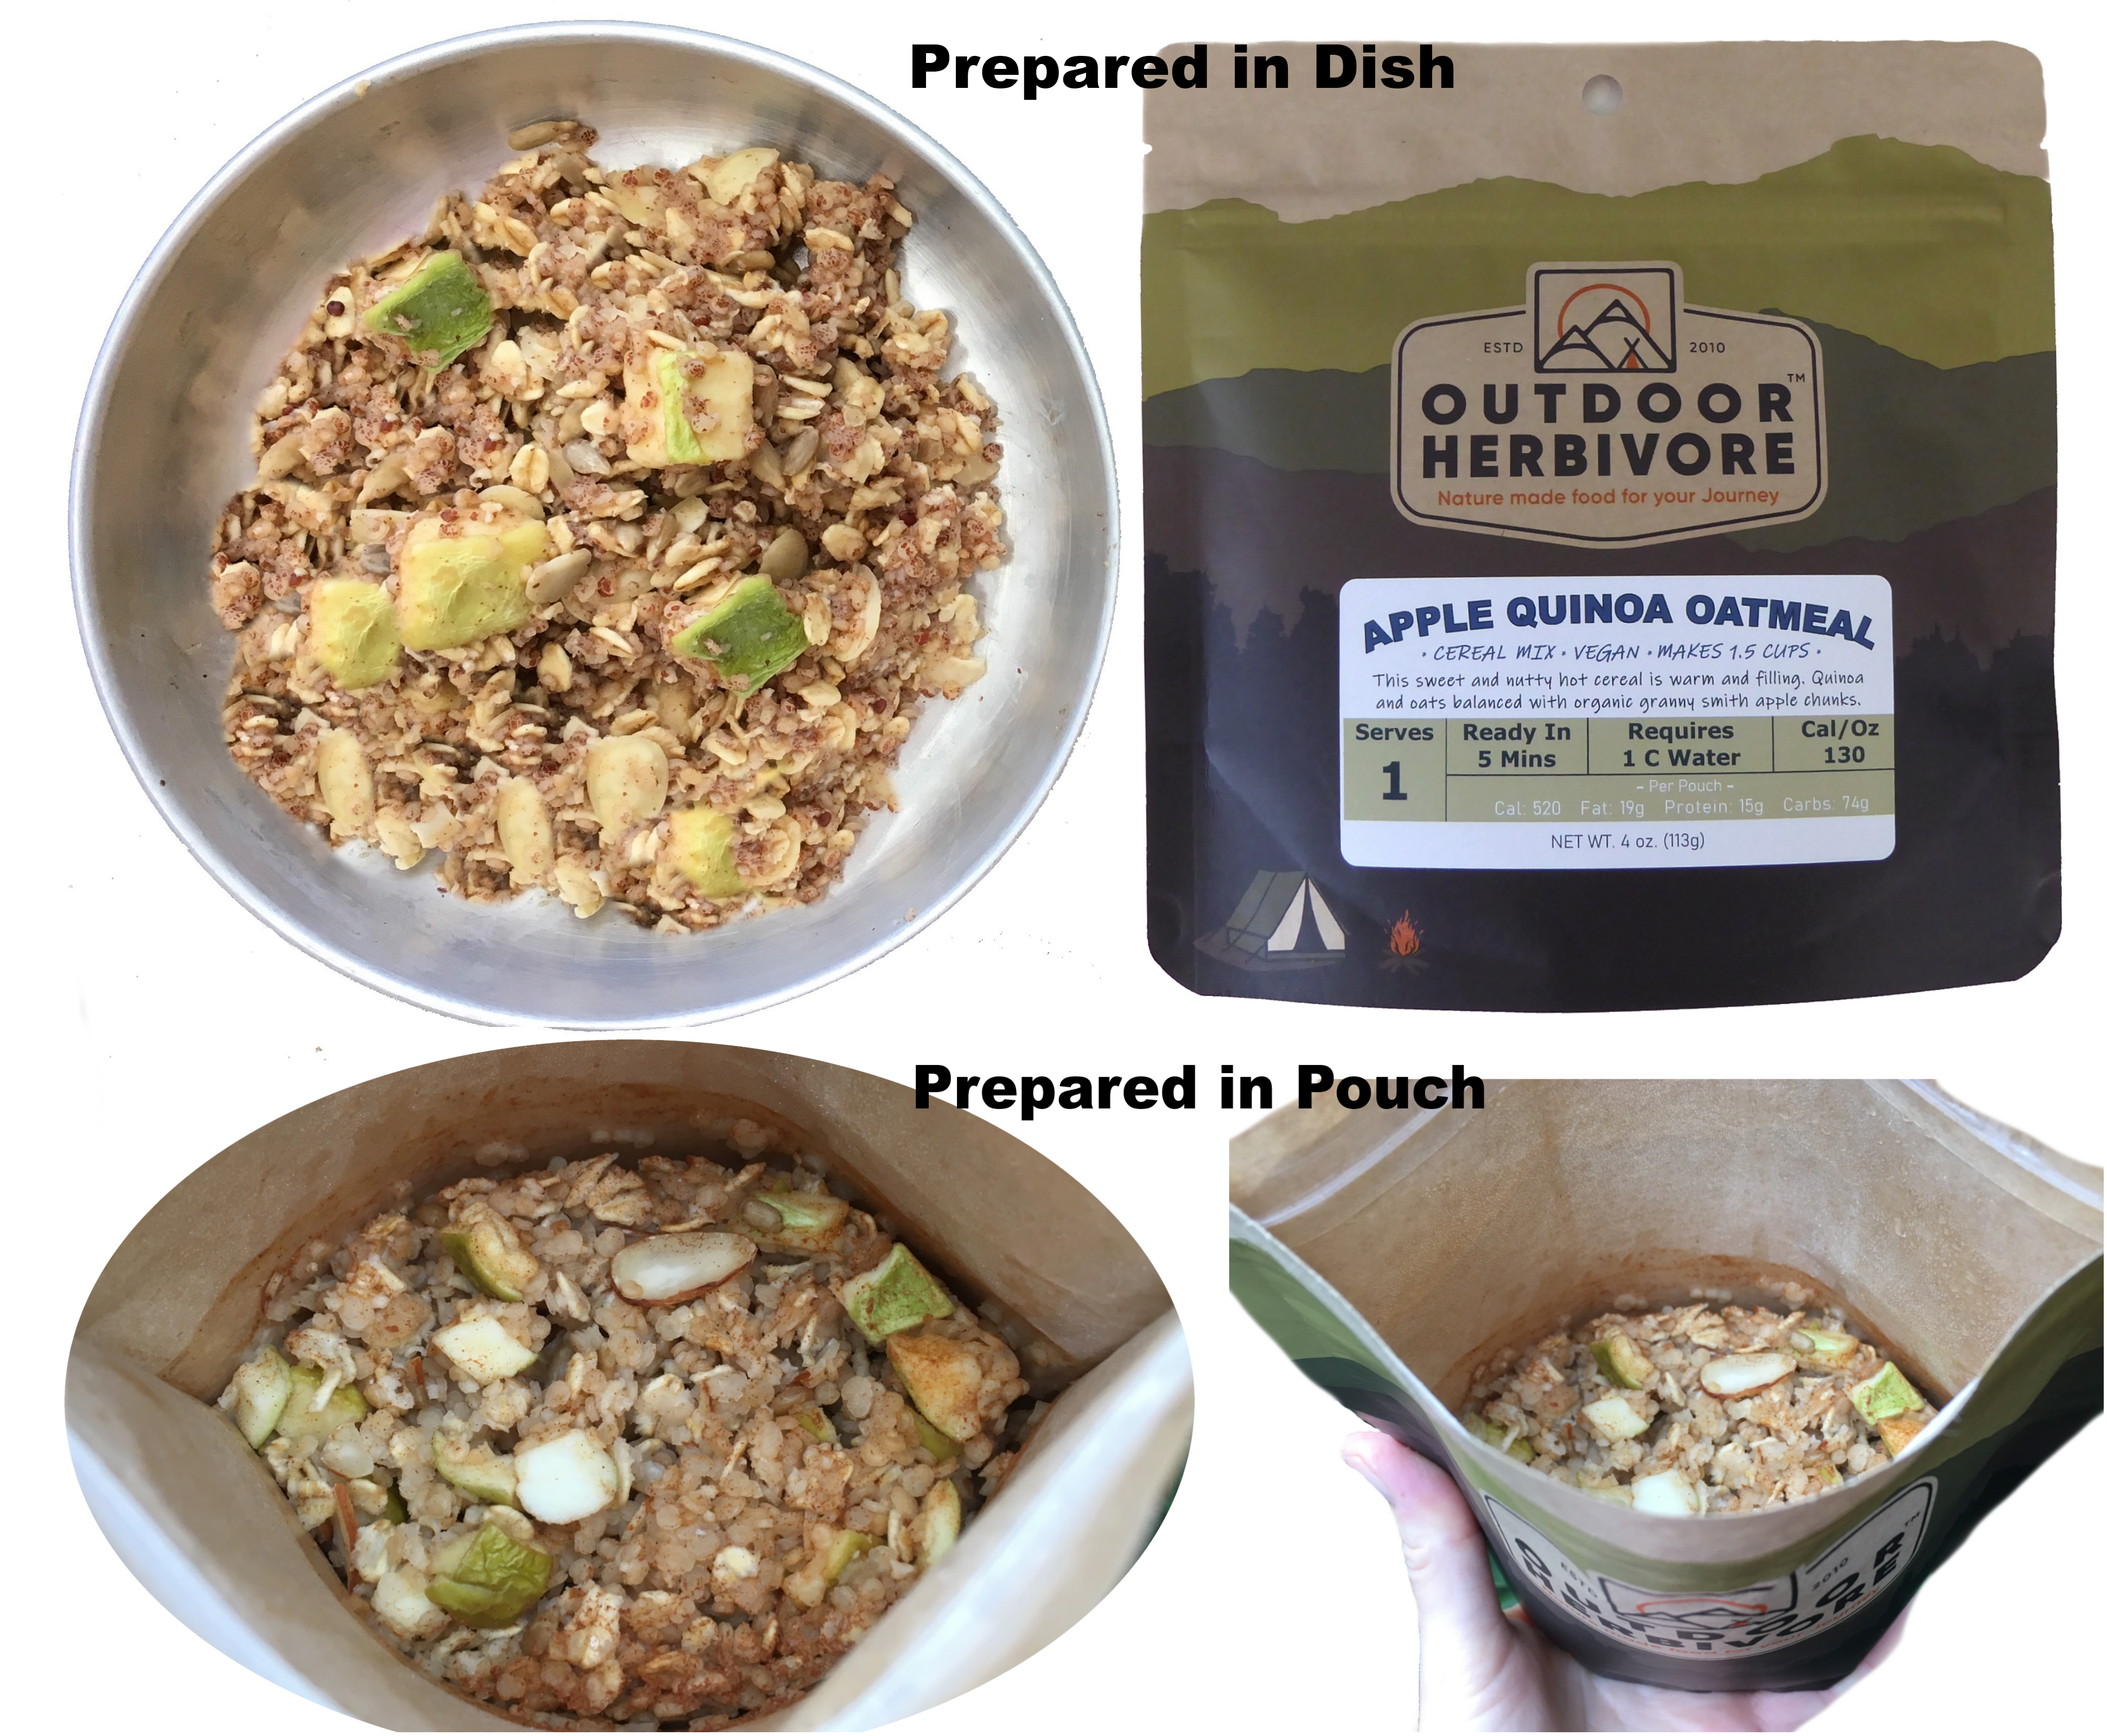 How Outdoor Herbivore Meals are Packaged and Prepared